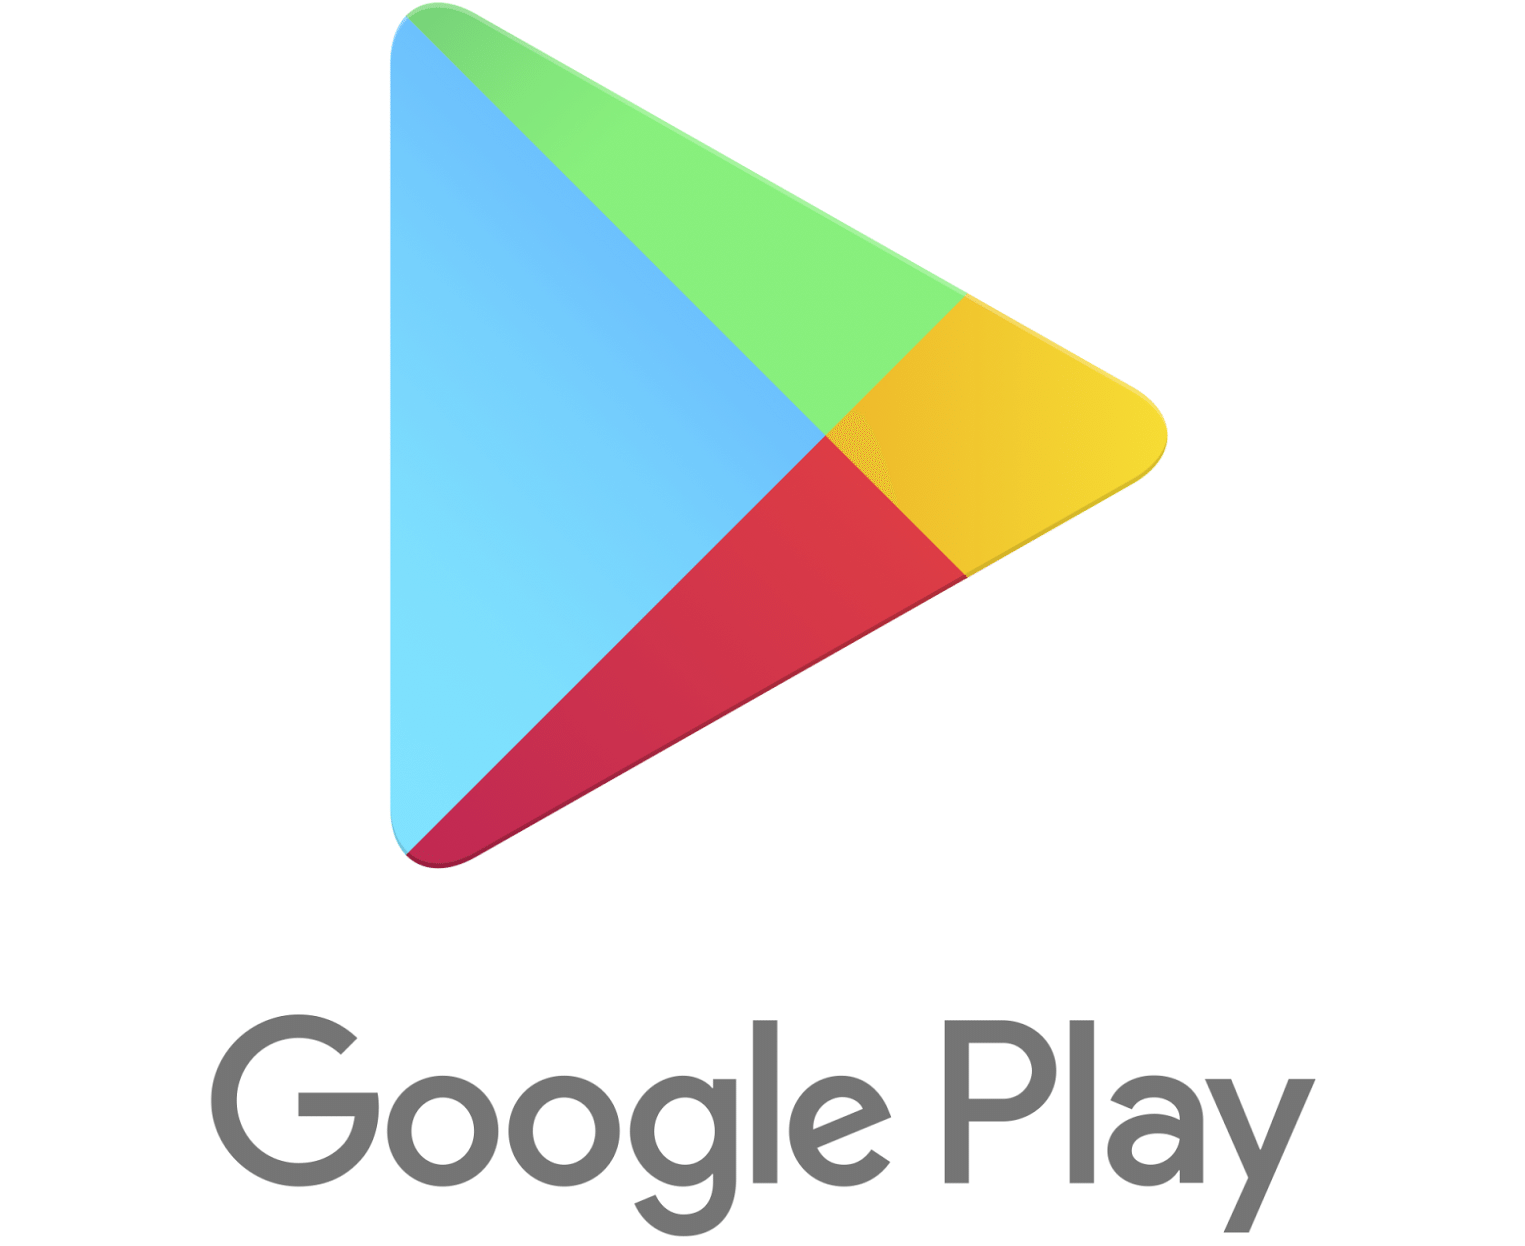 Store apps play Download Google